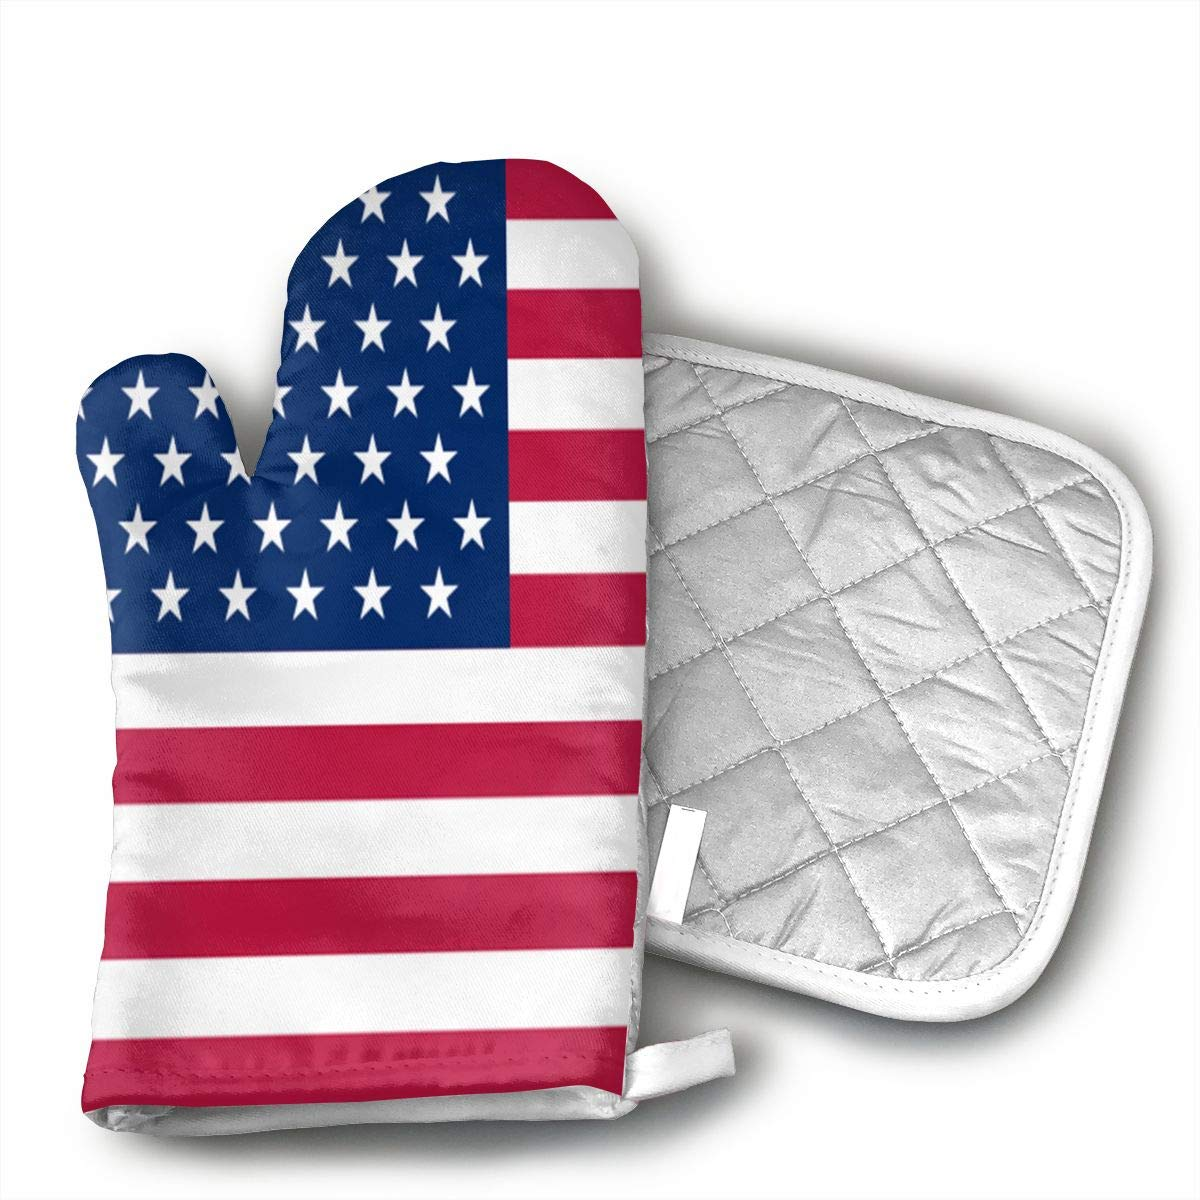 UFKEOJ American Flag Oven Mitts,BBQ Microwave Baking Protective Glove and Hot Pot Heatproof Mat Set,Cotton, Machine Washable